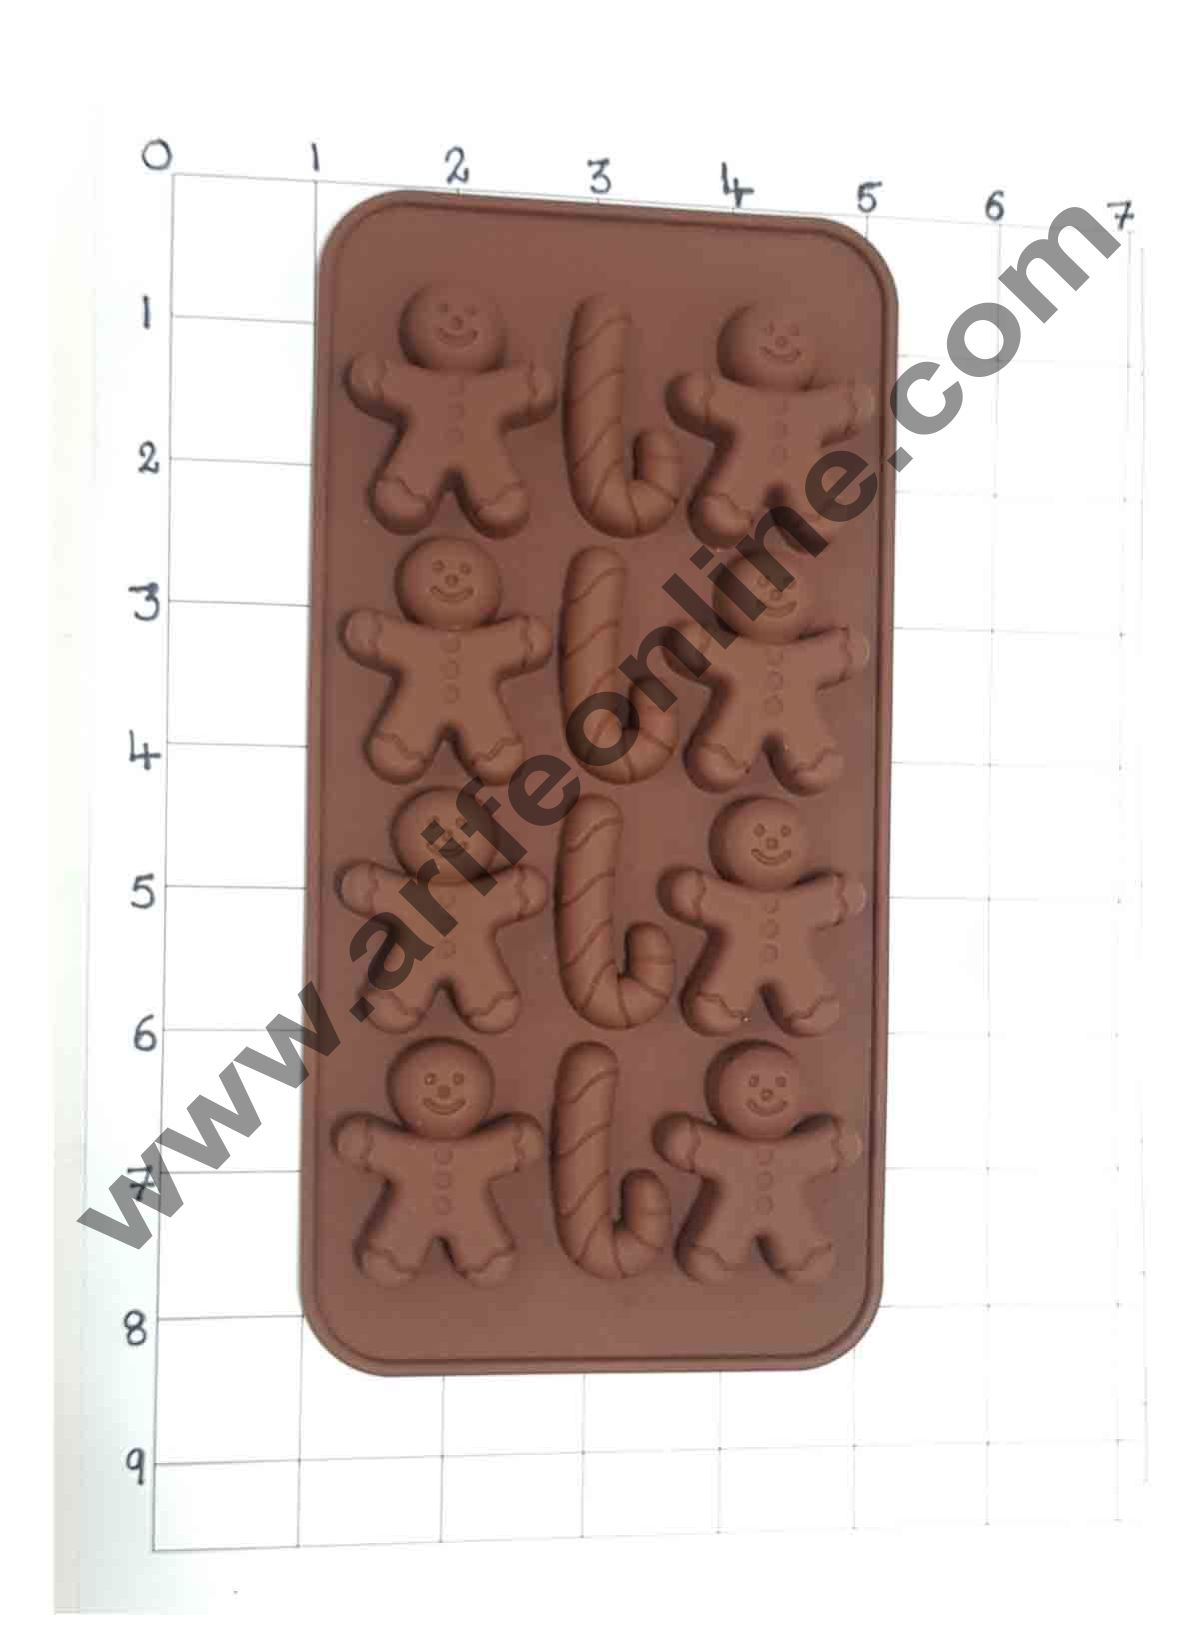 Cake Decor Silicon 12 Cavity Christmas Design Brown Chocolate Mould, Ice Mould, Chocolate Decorating Mould